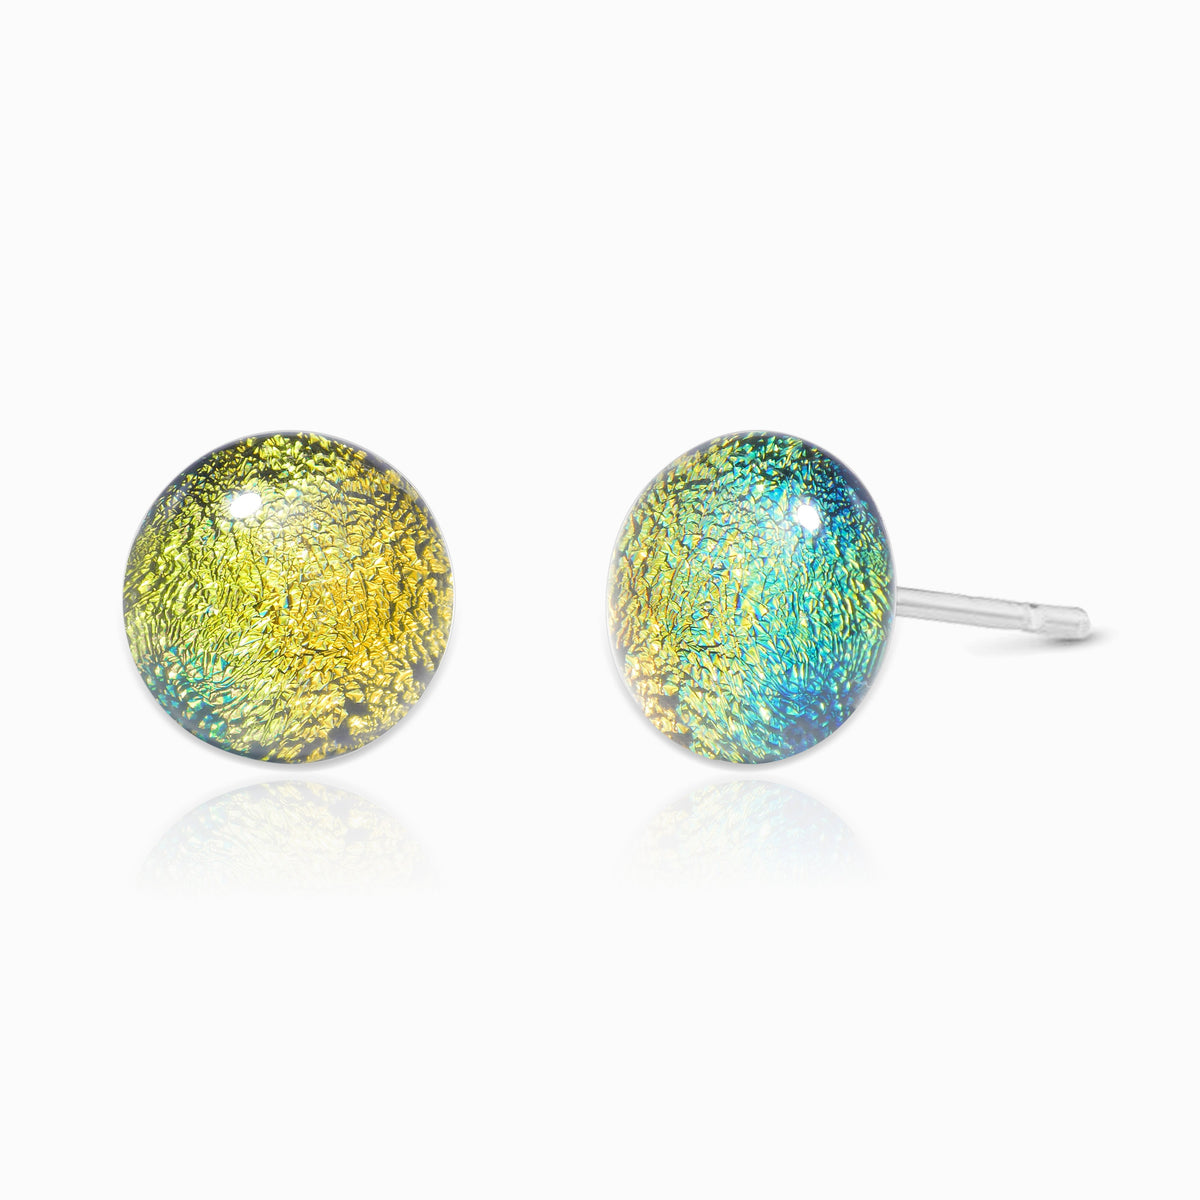 Microcosmoses EARRINGS GLASS REFLET EARRINGS GOLD ~ GREEN BOKEH | ECLIPSE | STUD | REFLET